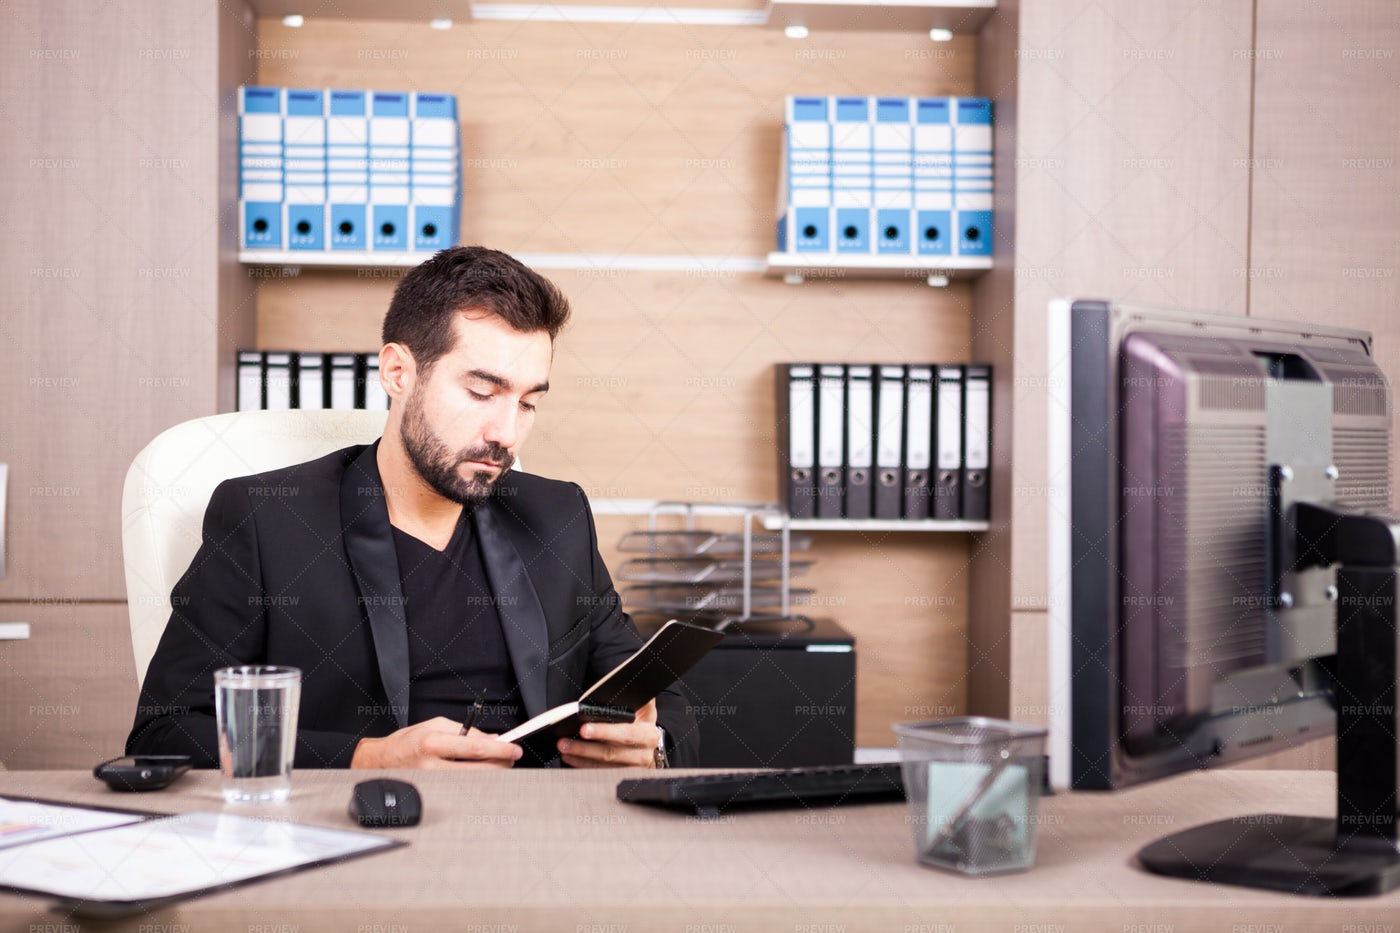 Working In The Office: Stock Photos